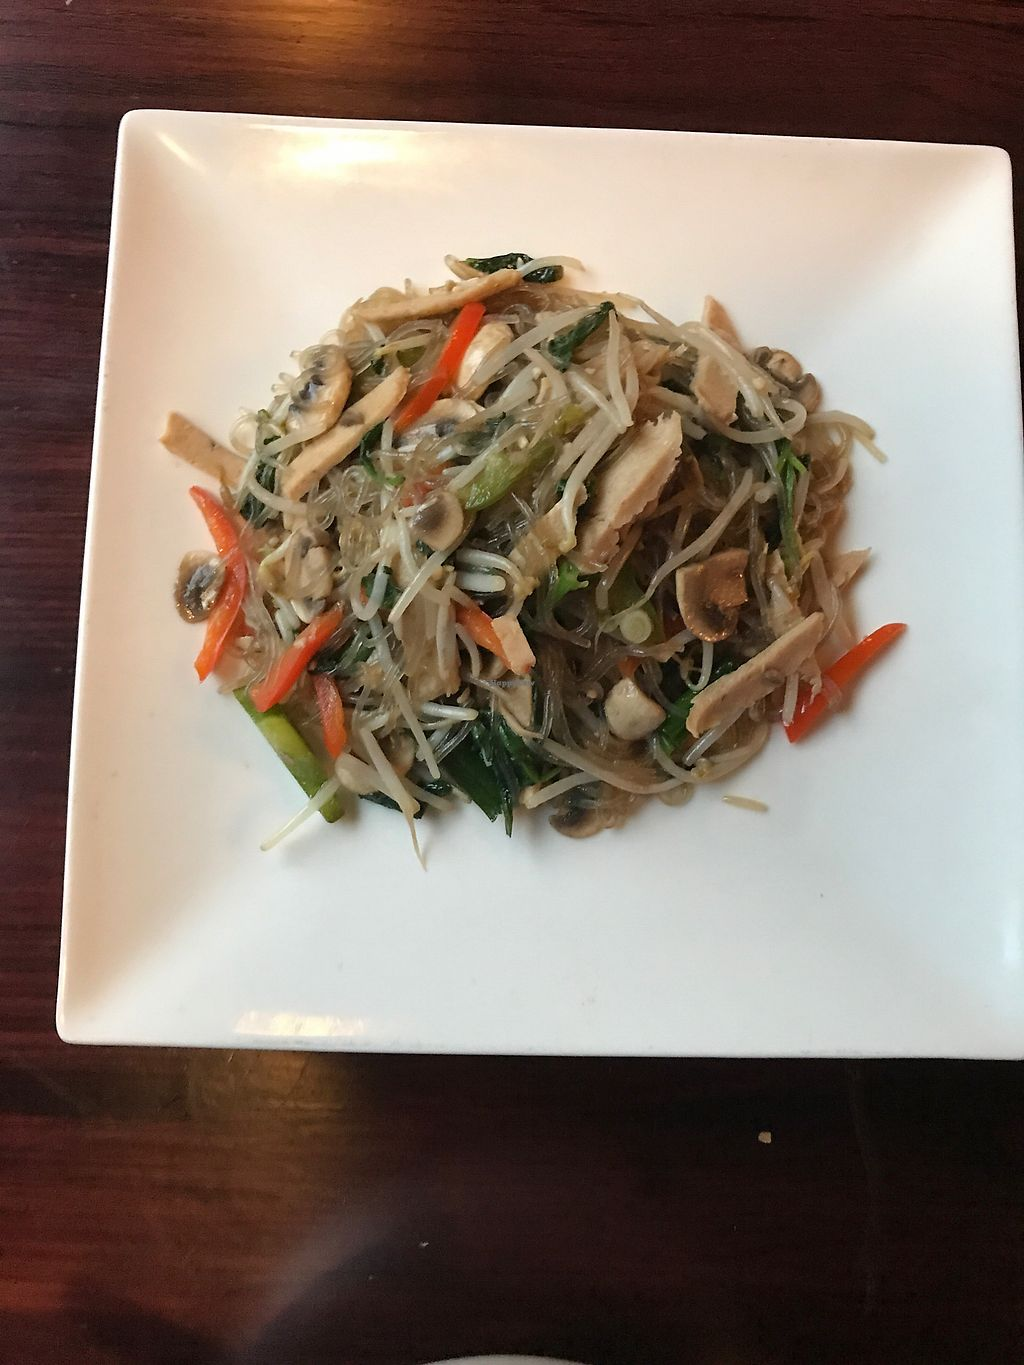 """Photo of Veggie Fun  by <a href=""""/members/profile/amelia3599"""">amelia3599</a> <br/>Korean style clear noodles <br/> July 15, 2017  - <a href='/contact/abuse/image/34687/280796'>Report</a>"""